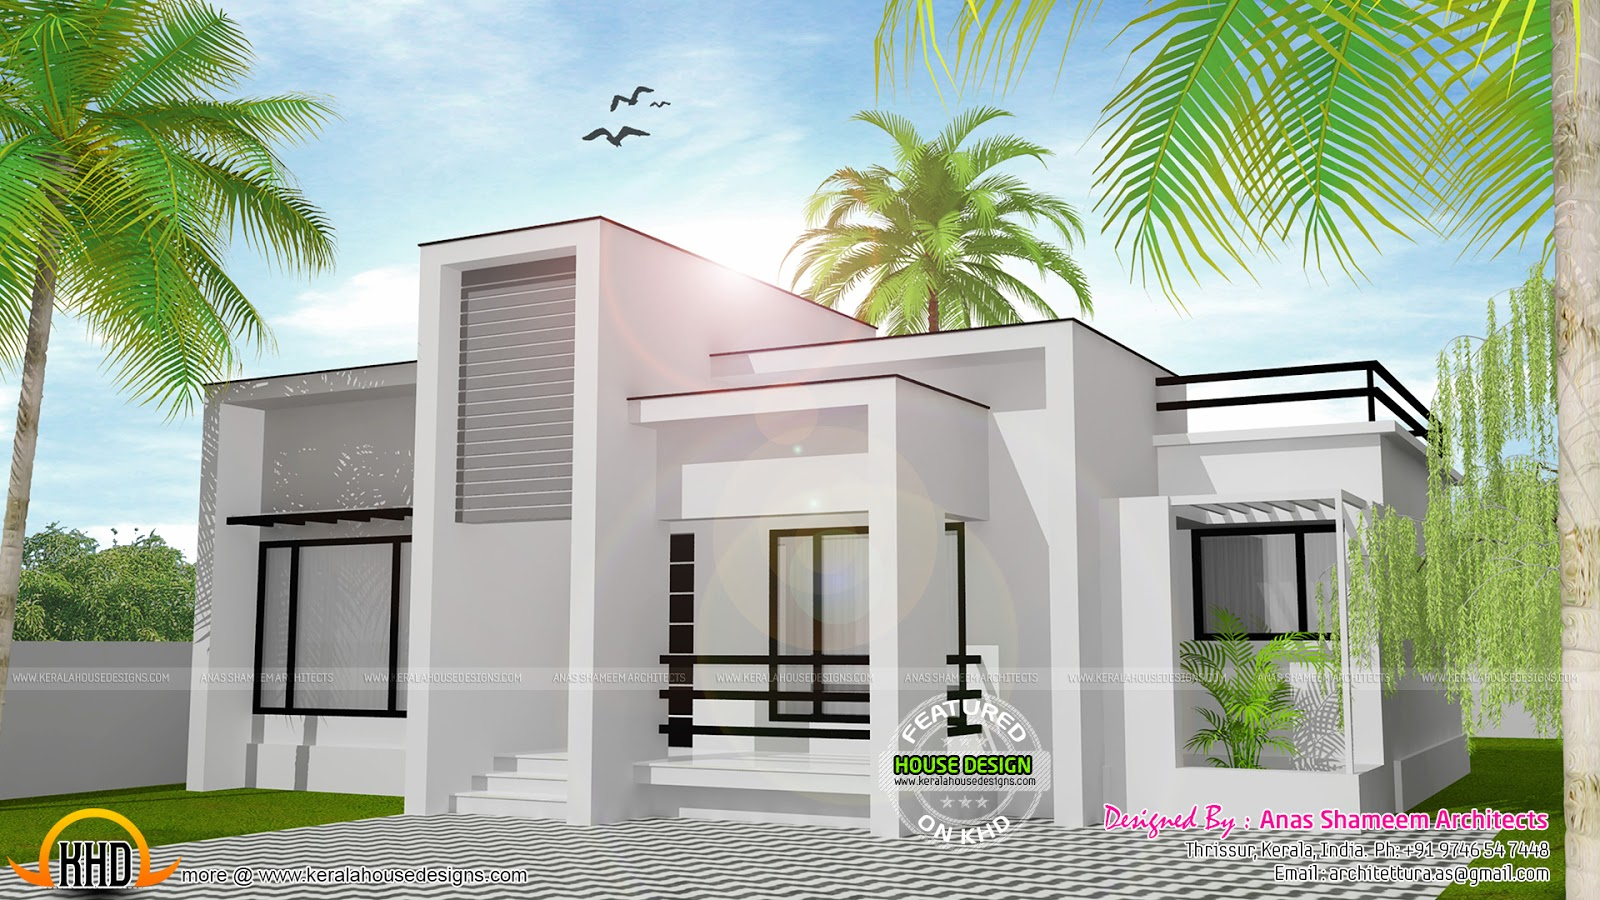 978 Sq Ft Flat Roof Single Floor Home Kerala Home Design And Floor Plans